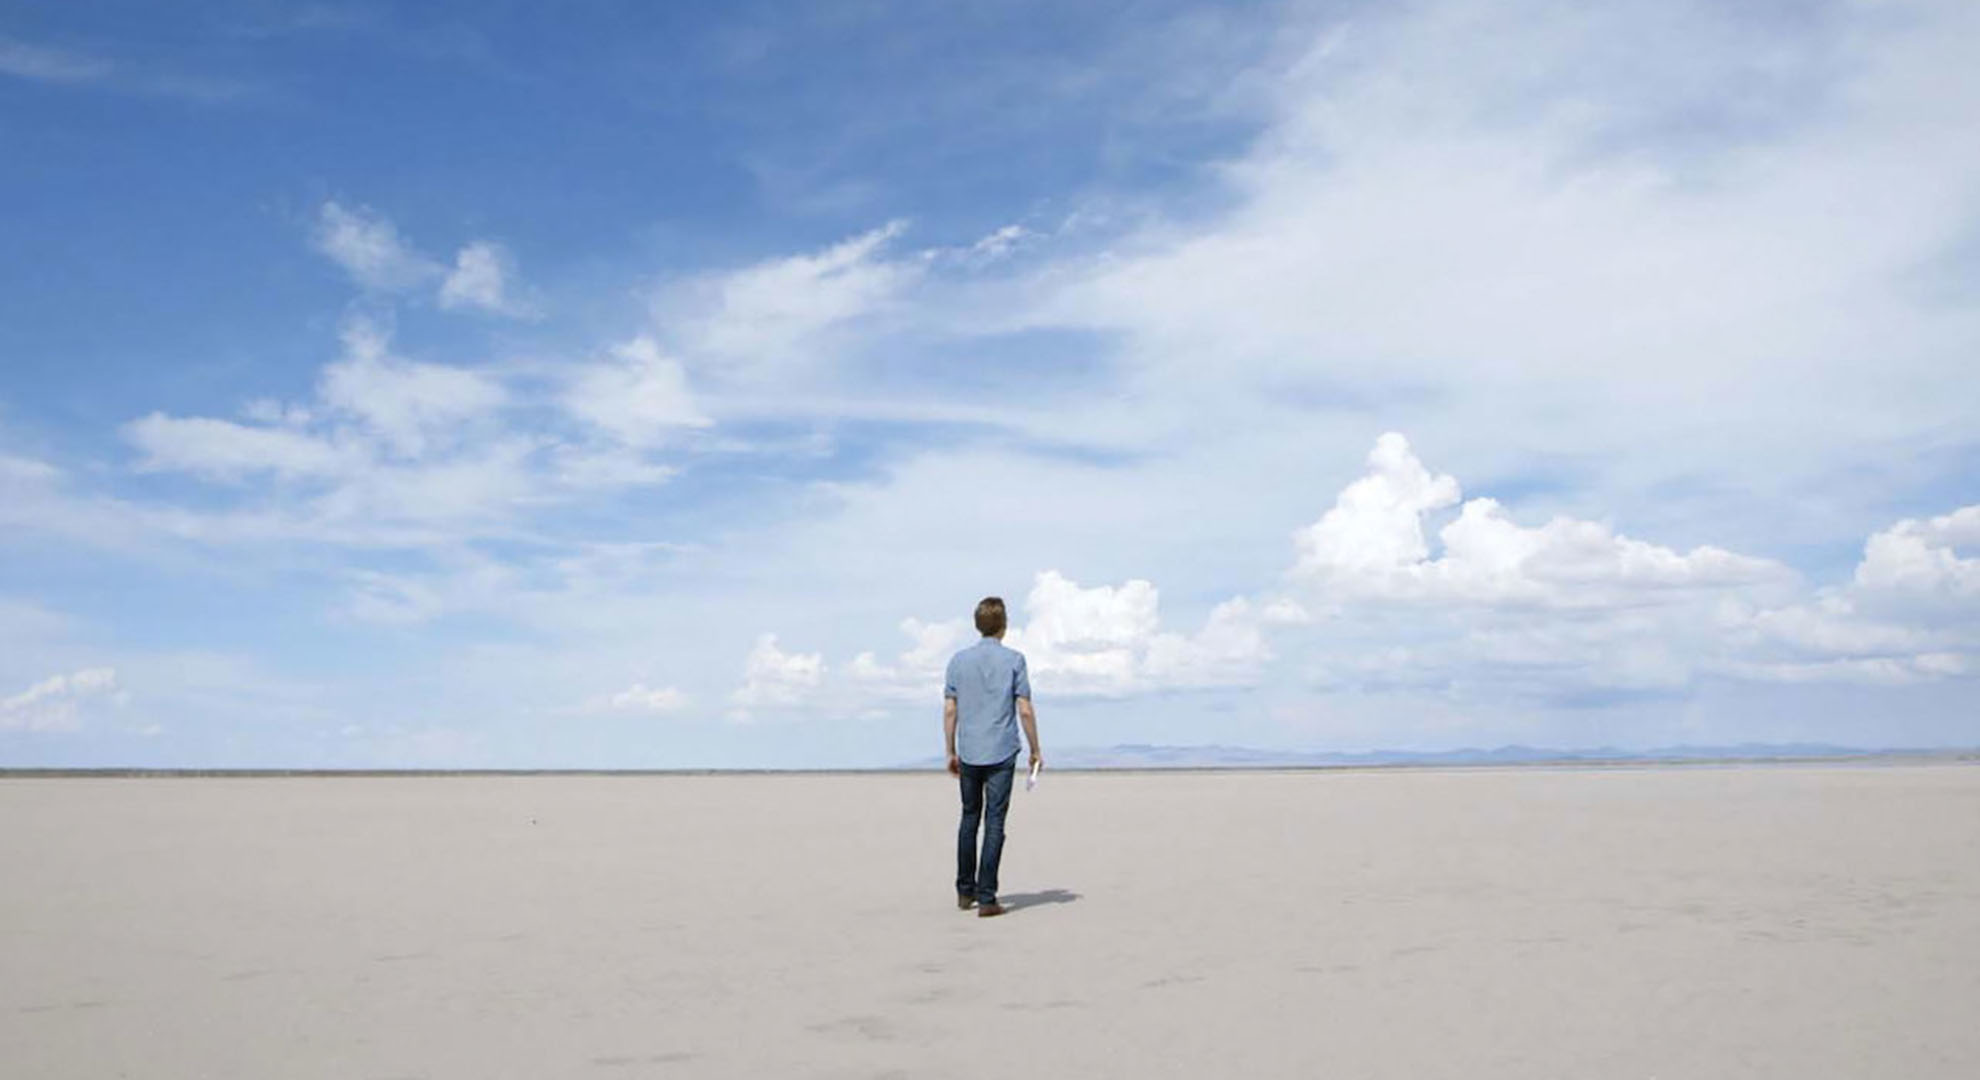 Minimalism – A Film About the Important Things